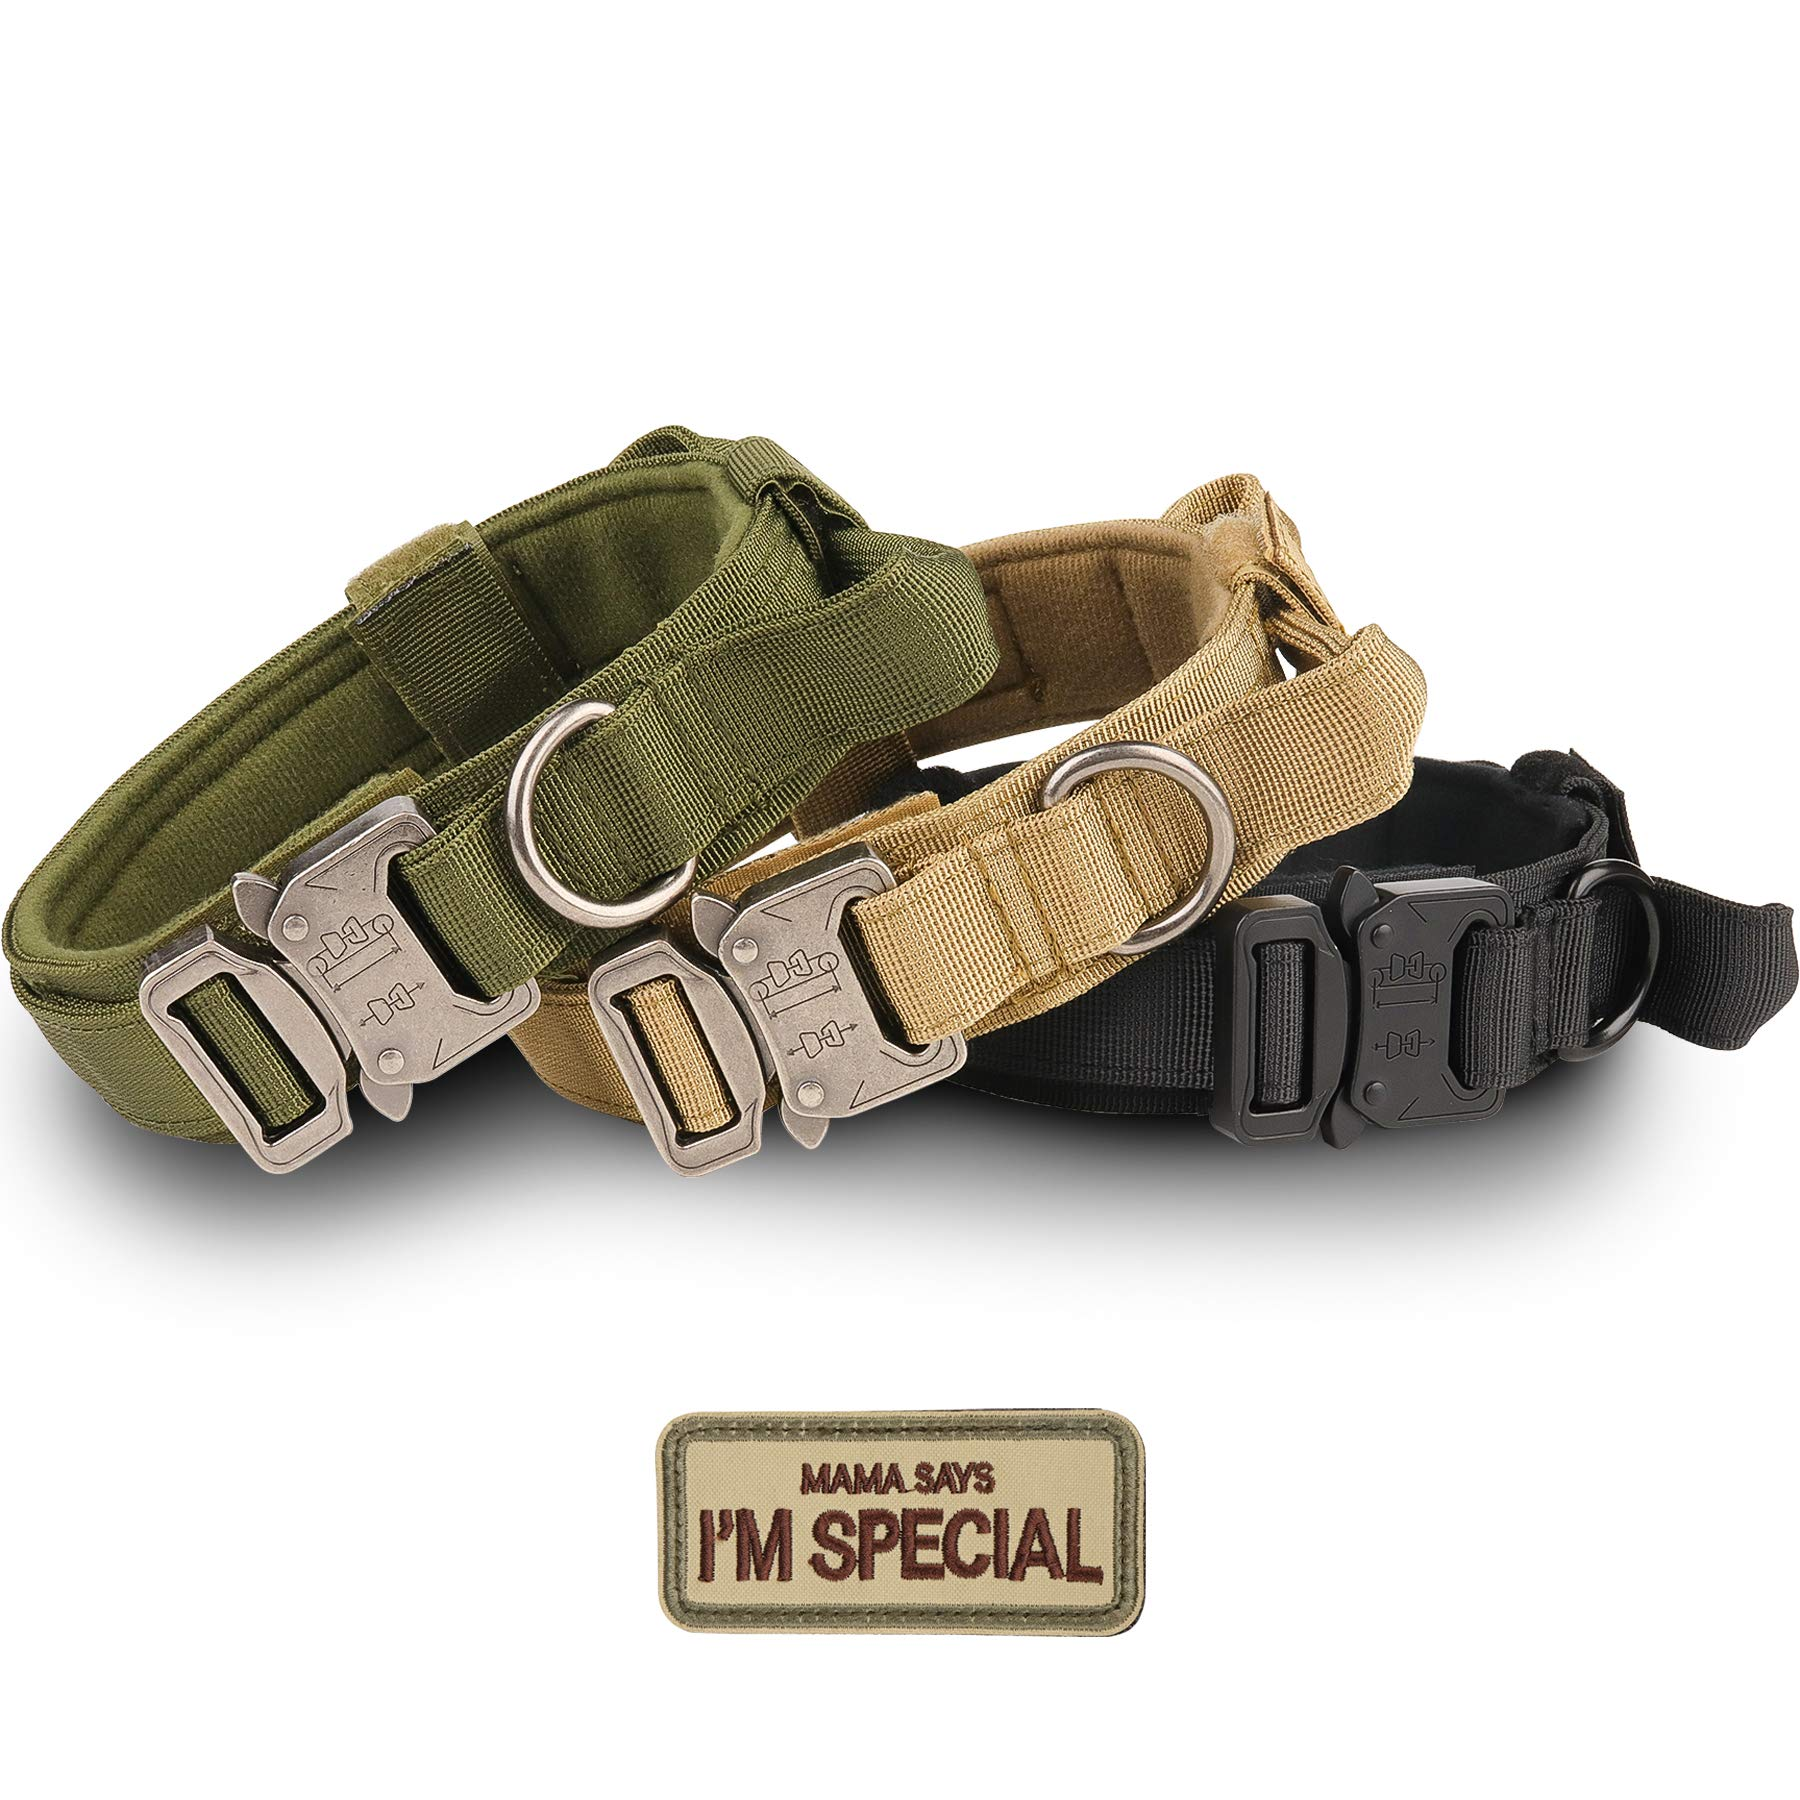 Tactical Dog Collar - KCUCOP Military Dog Collar with Mama Says I m Special Patch Thick with Handle K9 Collar Tactipup Dog Collars Adjustable Heavy Duty Metal Buckle for M,L,XL Dogs(Brown,M)